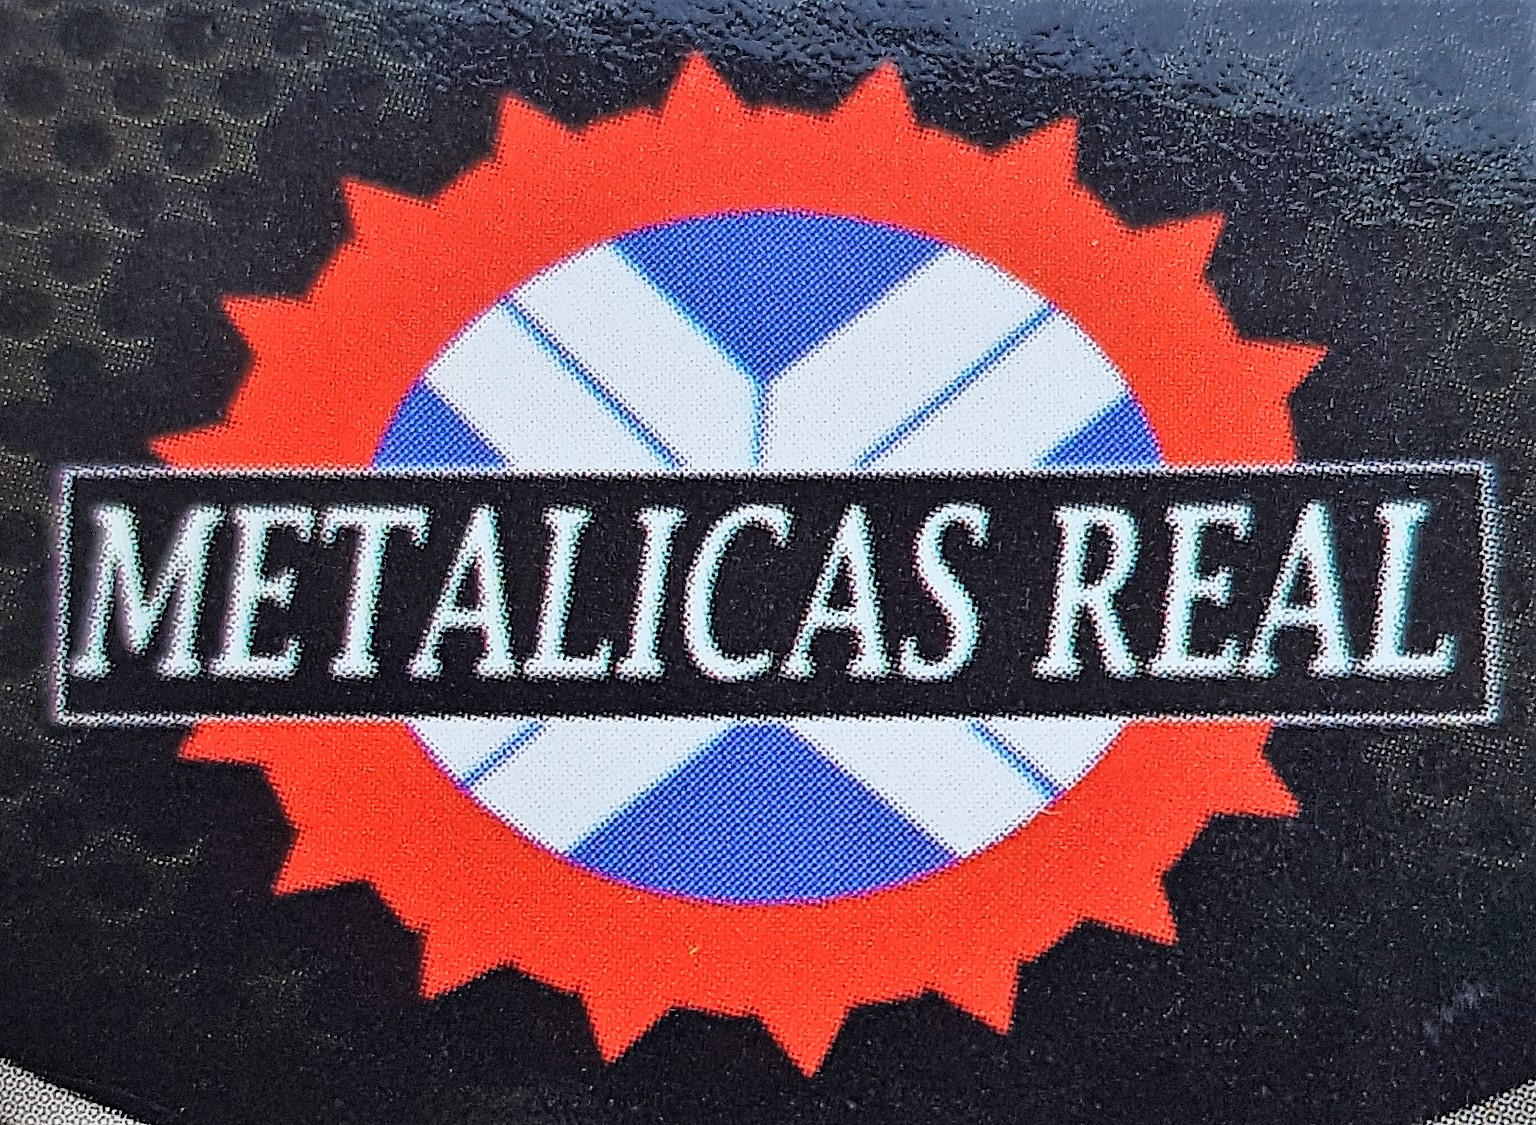 Metalicas Real